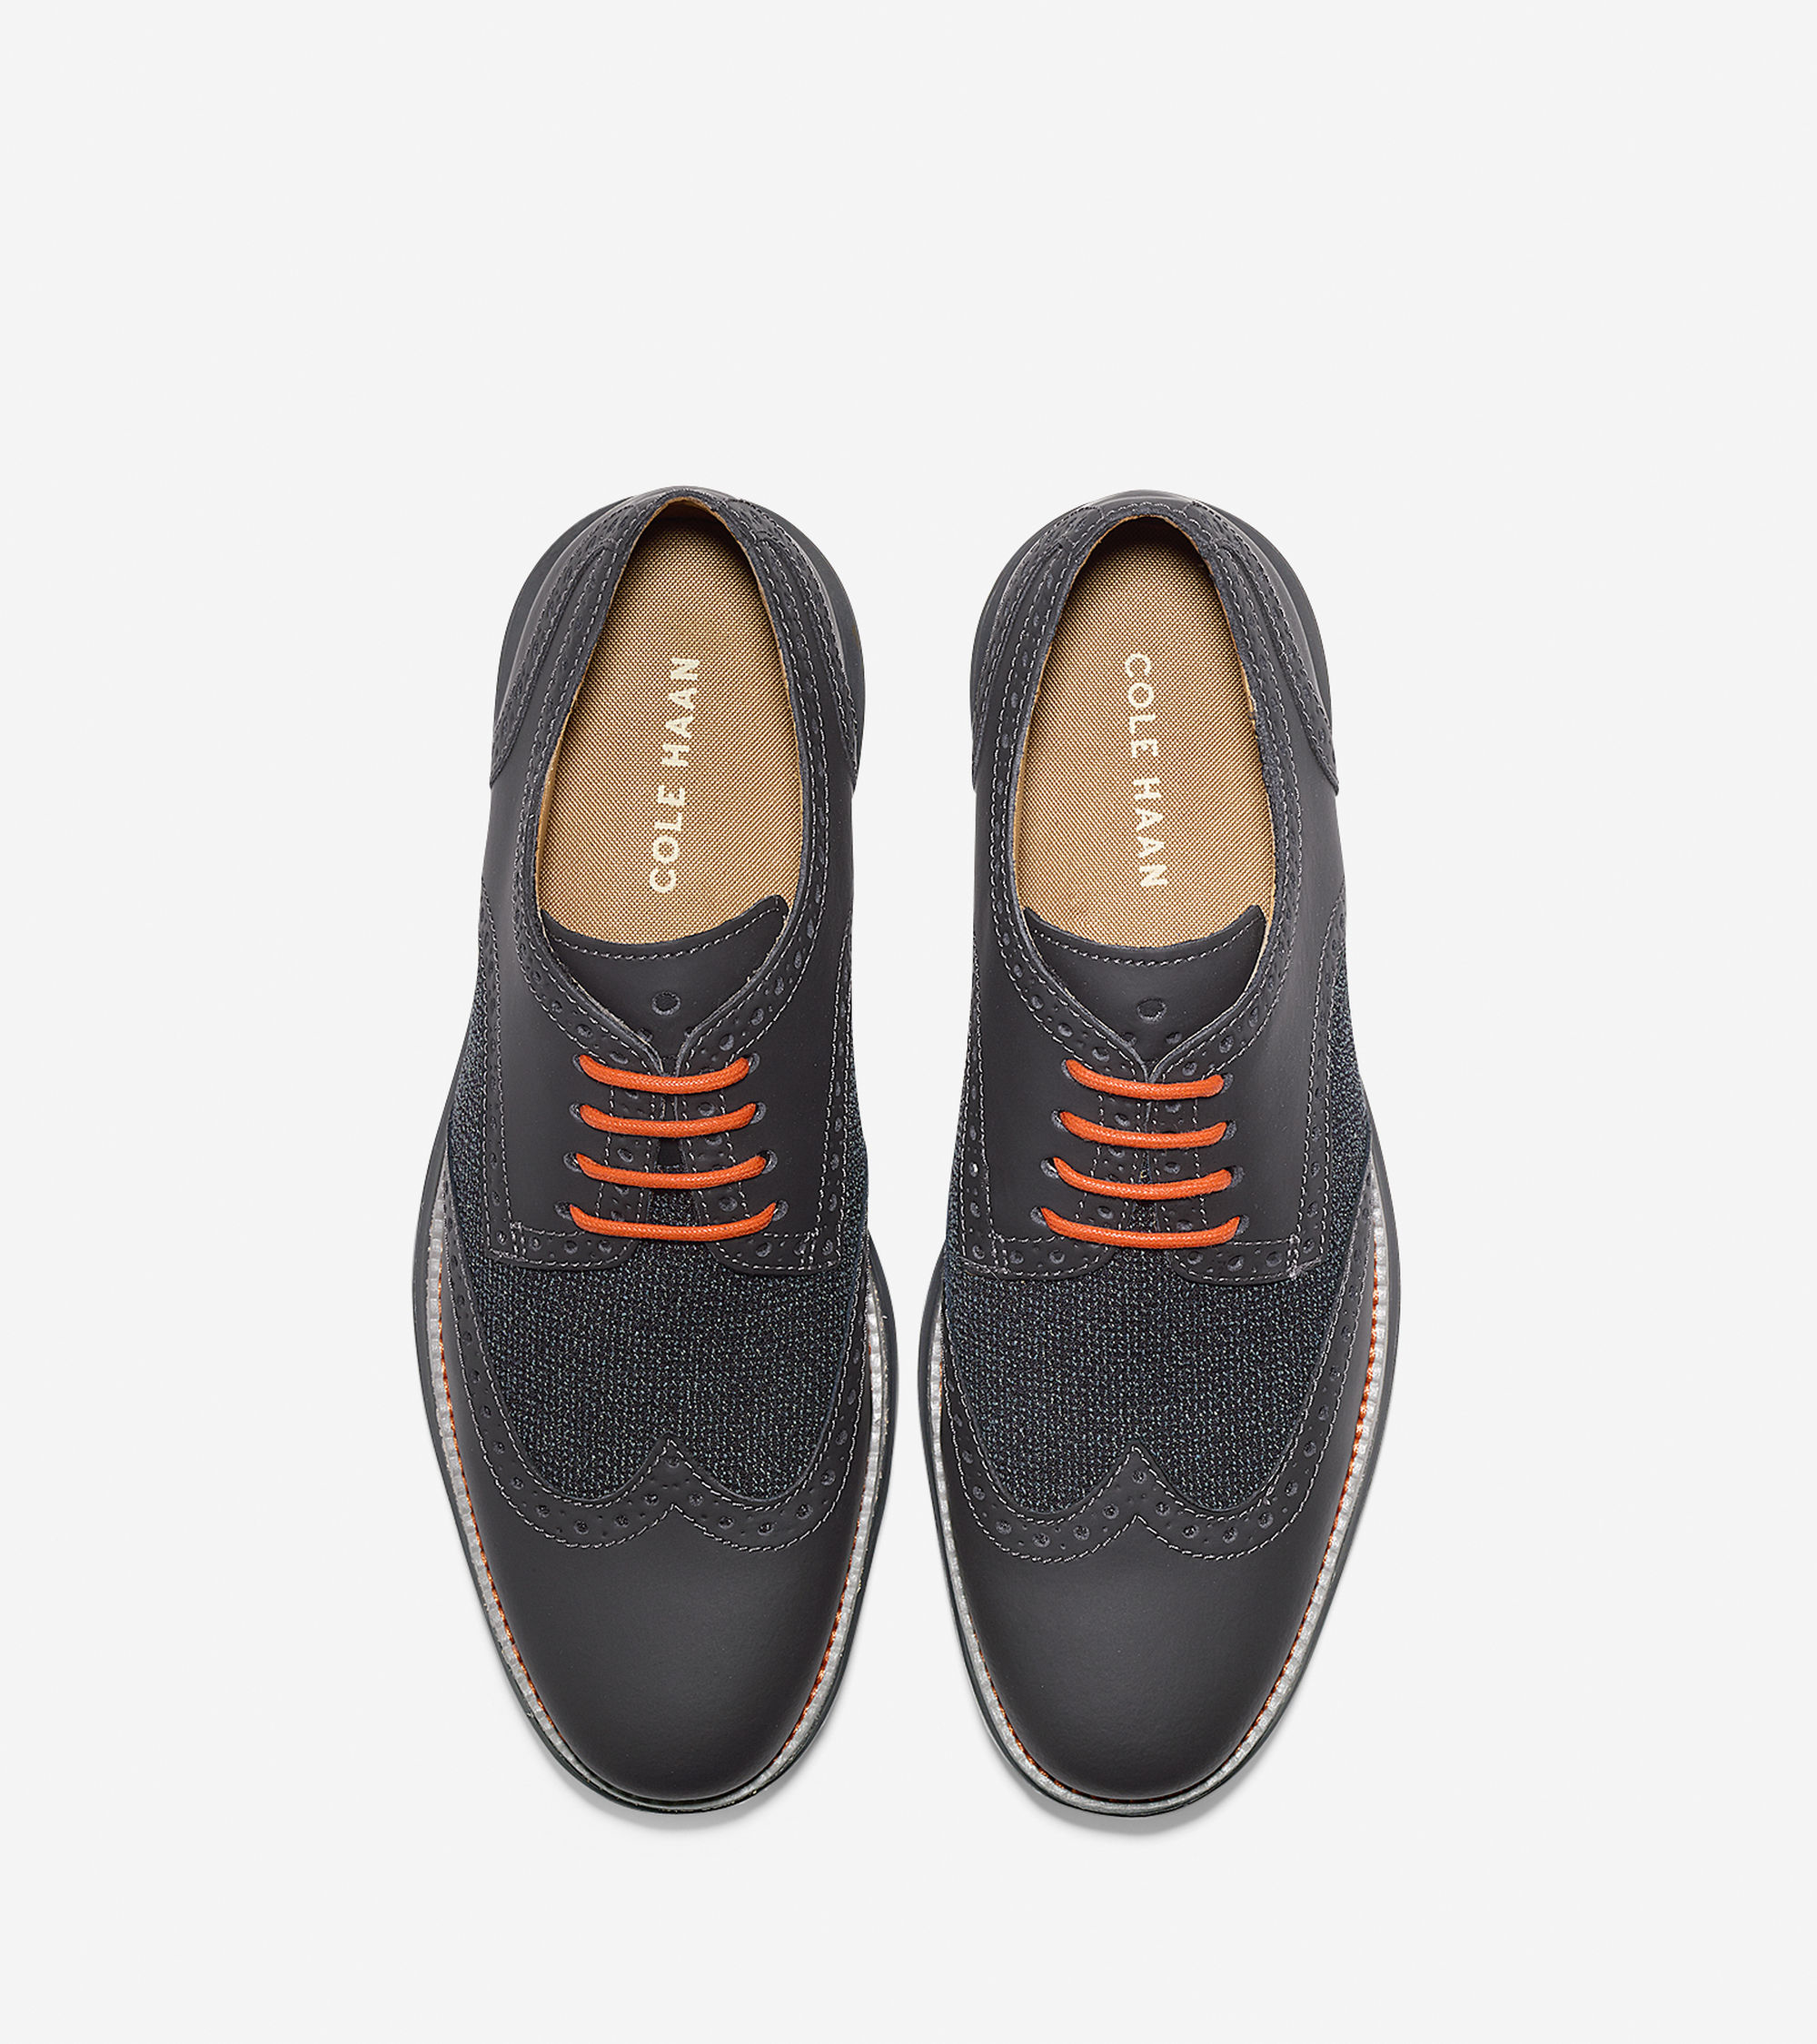 Ergonomic Dress Shoes